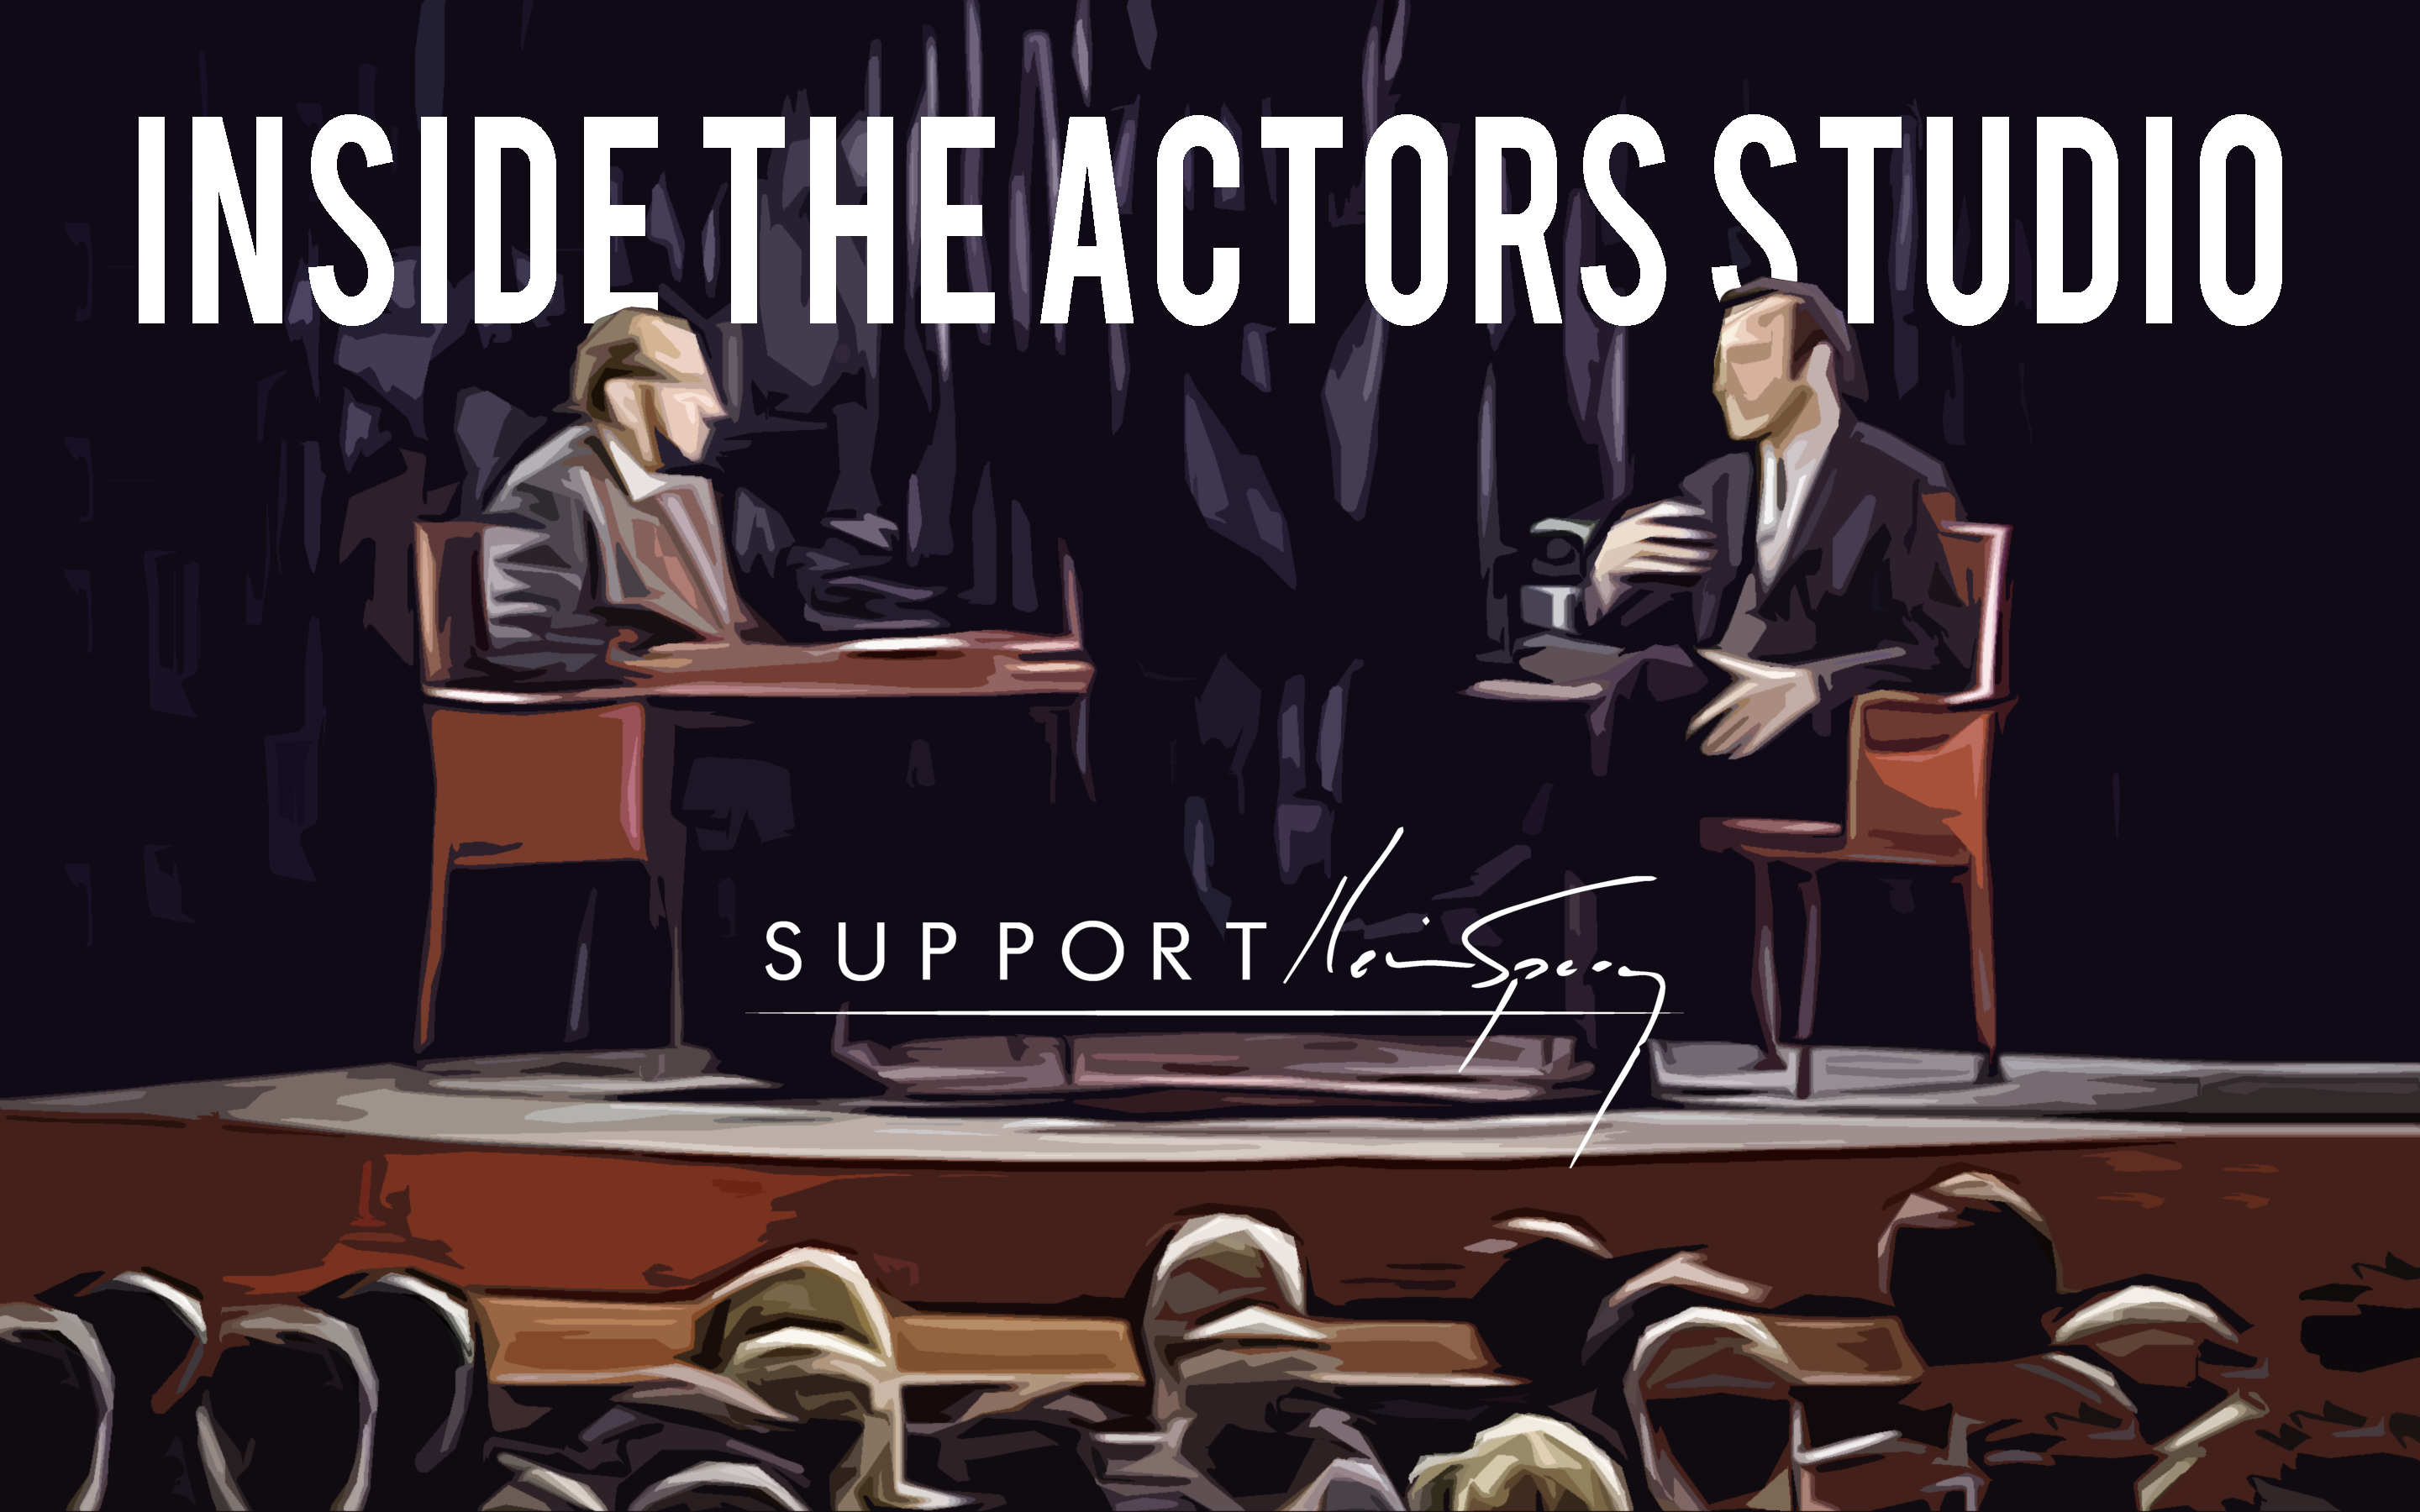 Kevin Spacey inside the actors studio supportkevinspacey.com